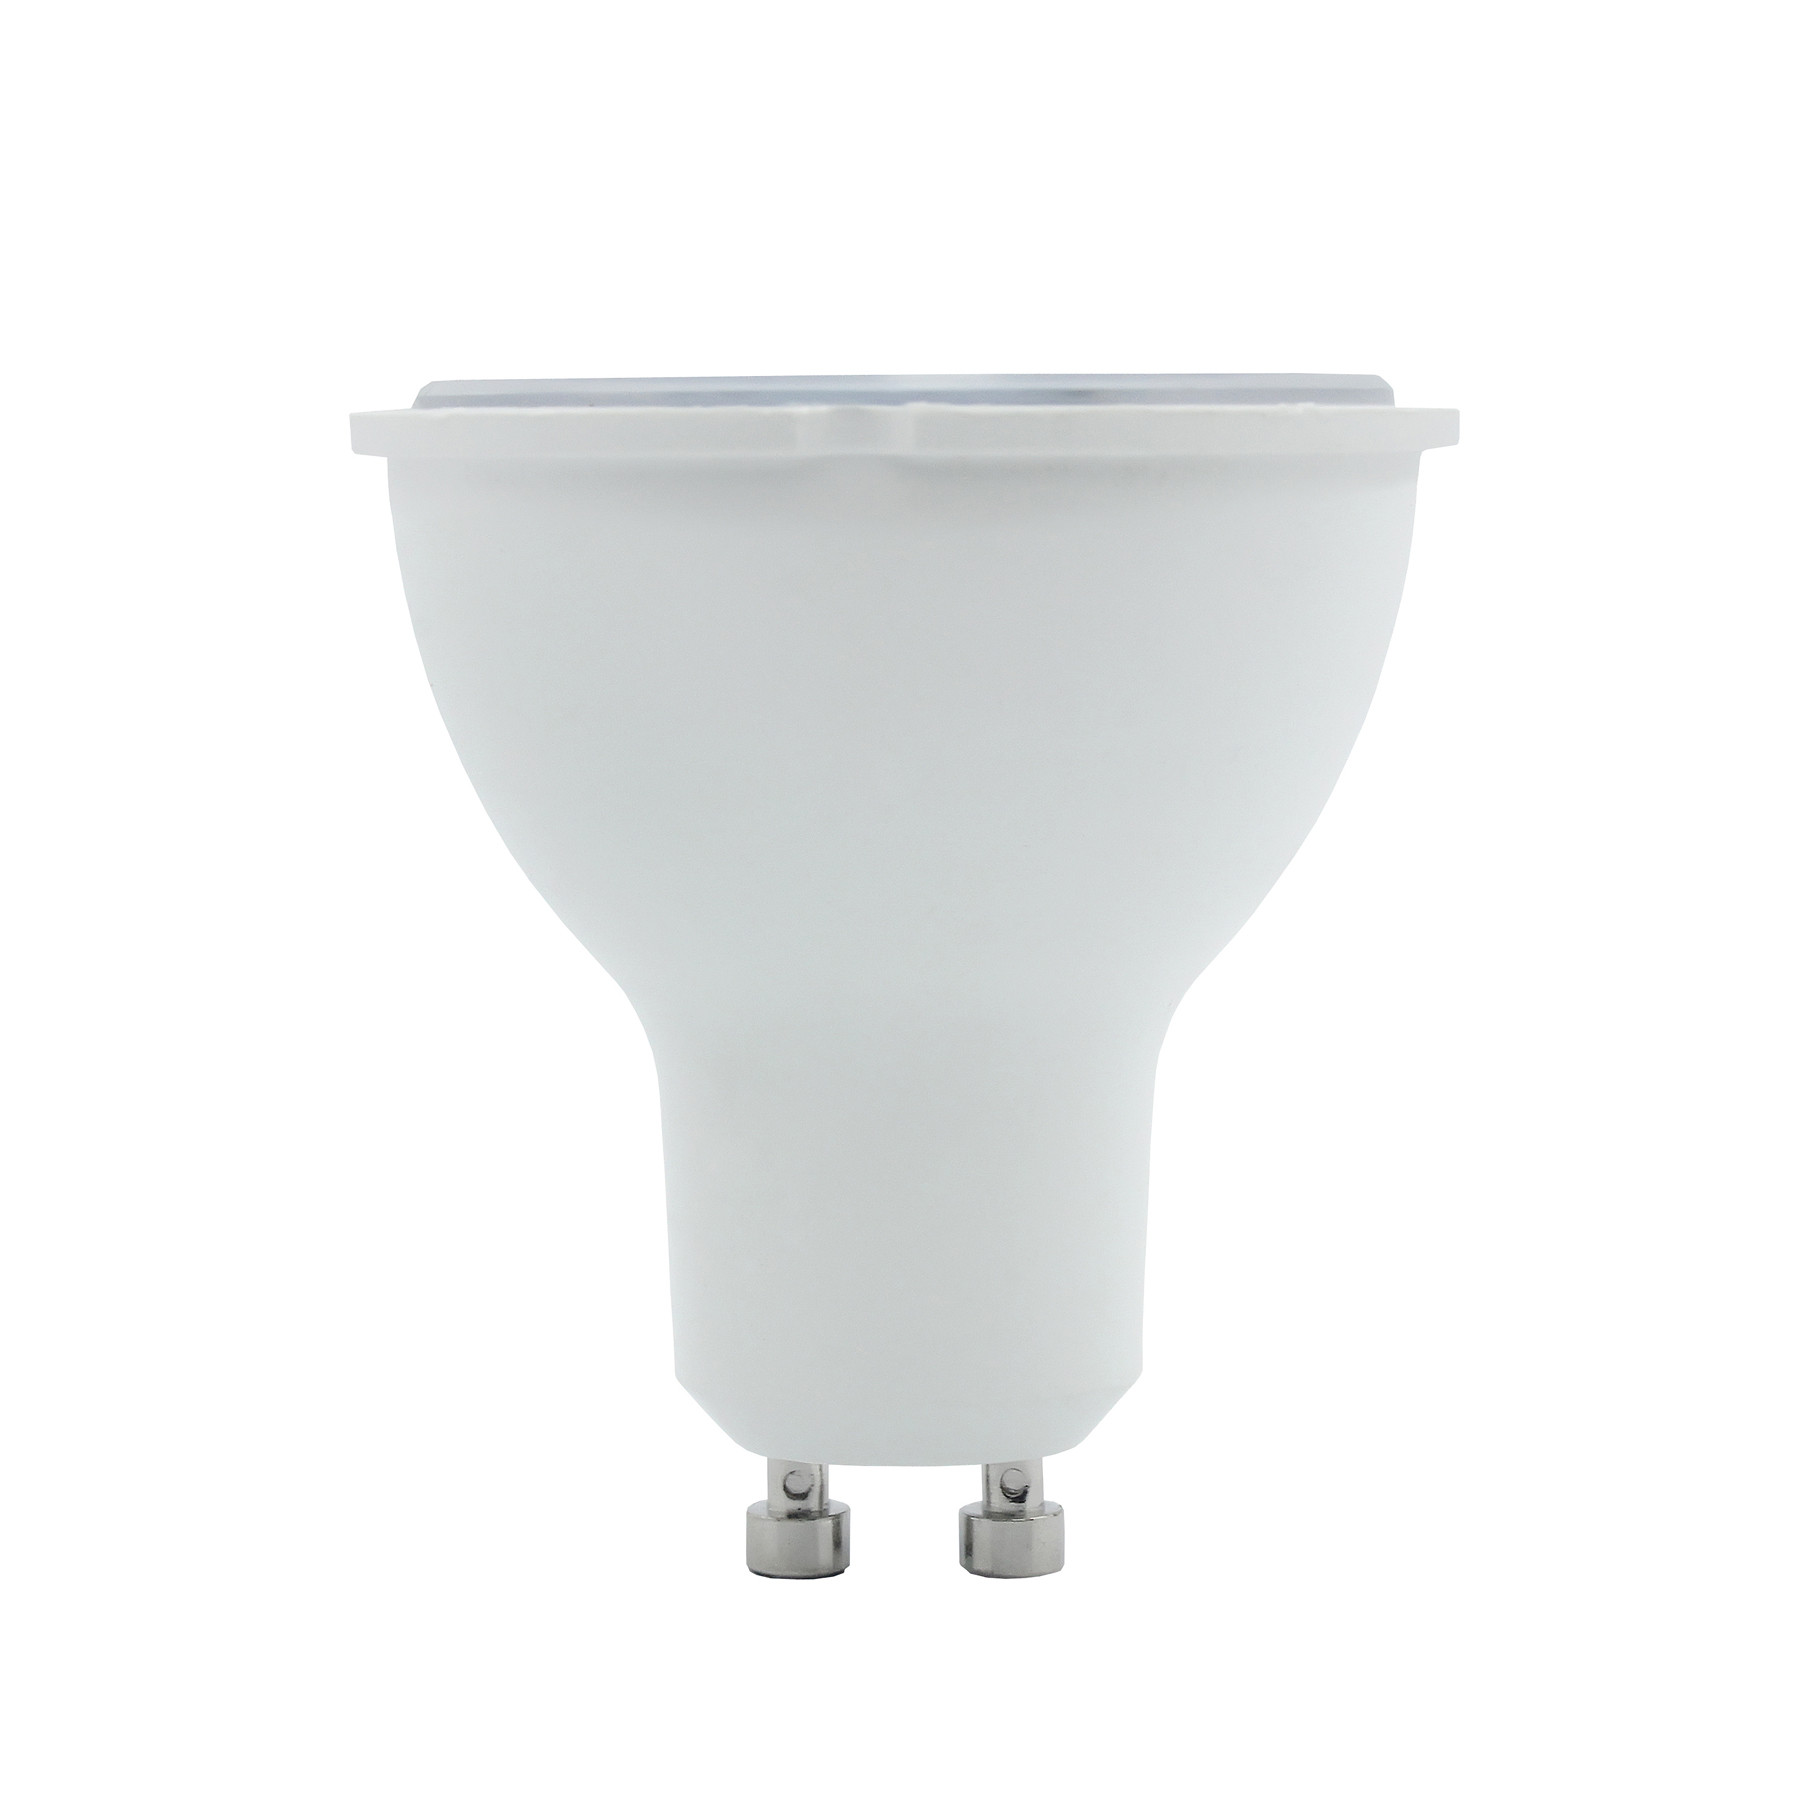 5watt GU10 LED 2pin Twist Lock Daylight Equivalent To 30watt 100 Degree Dimmable